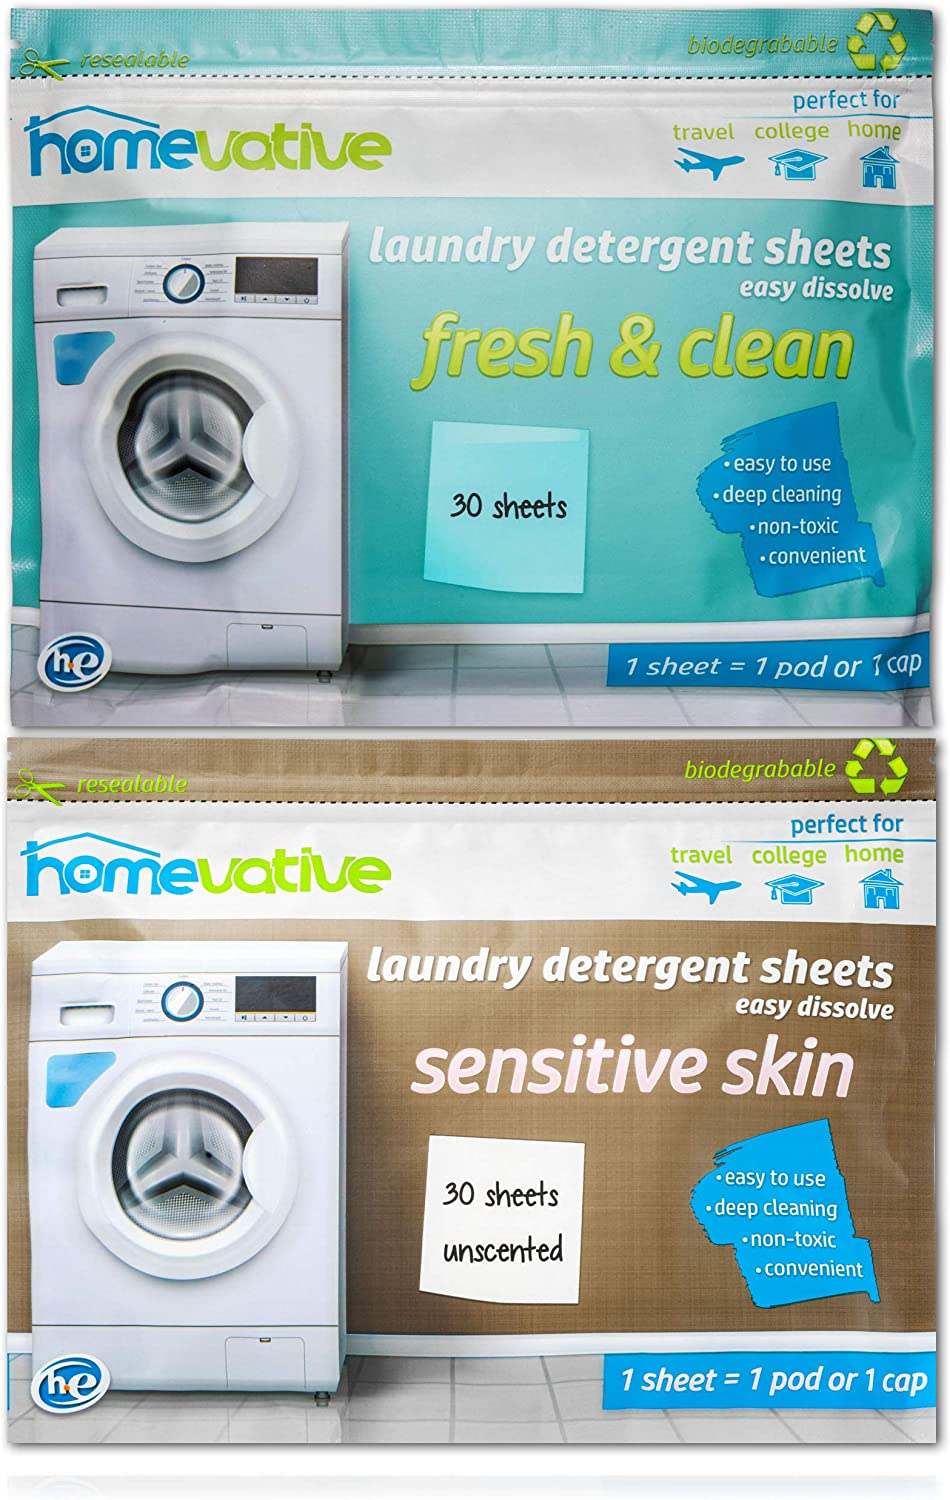 Homevative Laundry Detergent Sheet Bundle, Scented & Unscented, 60 Total Sheets